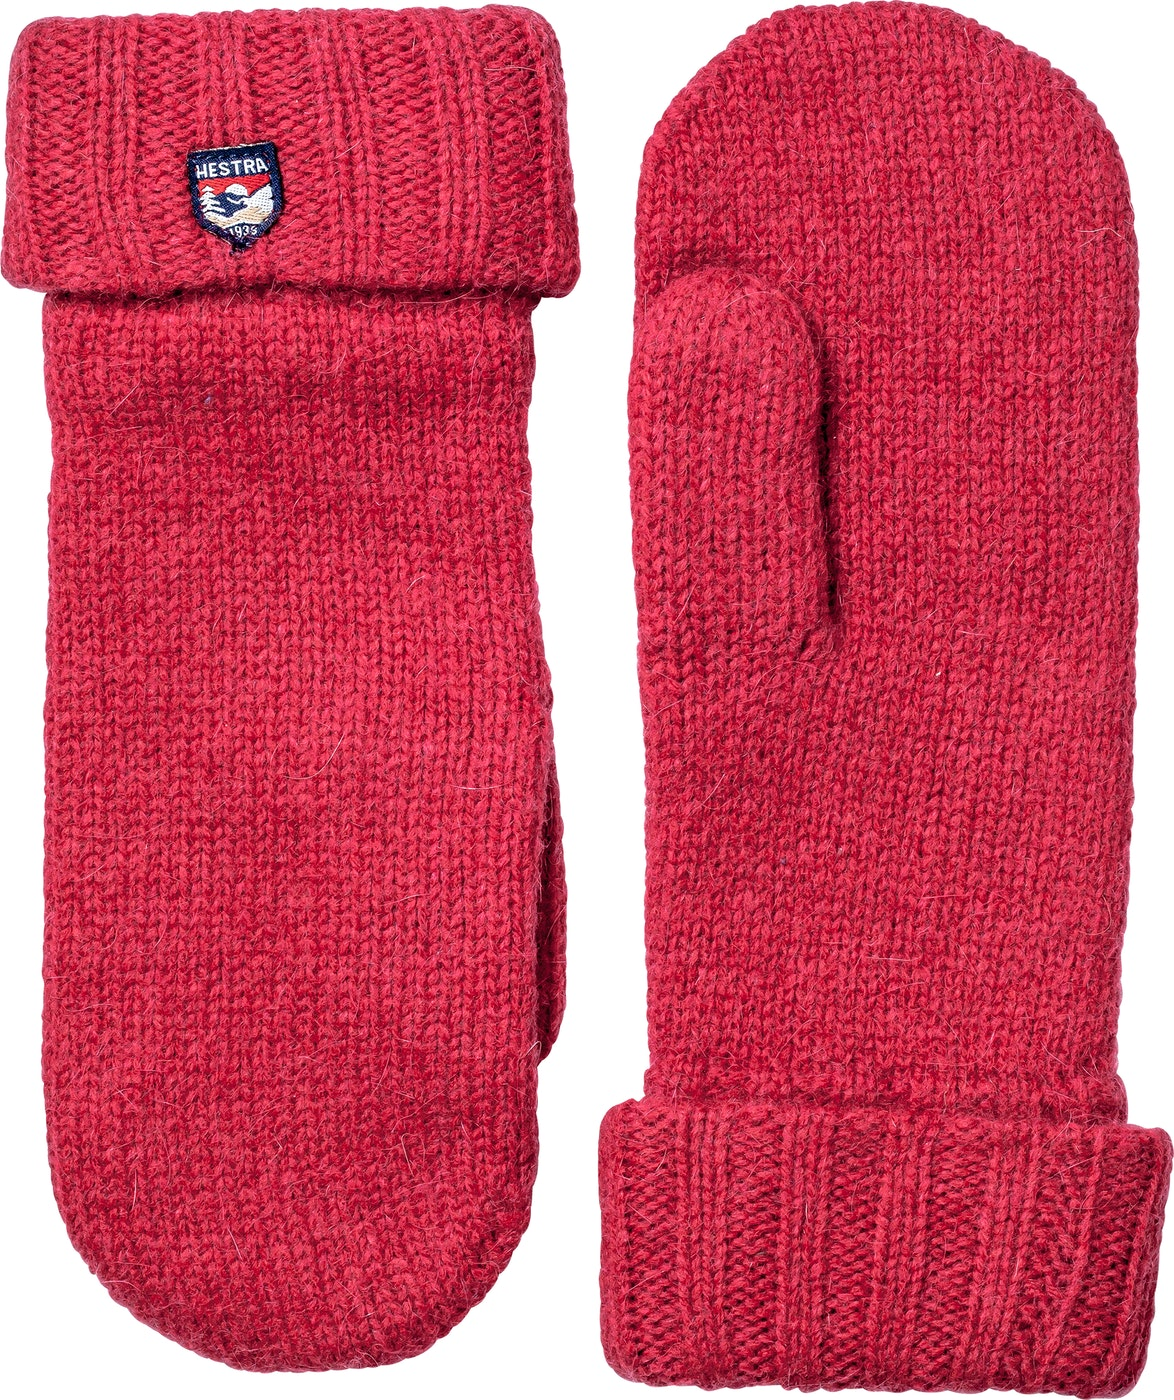 Product image for 63481 Bonny Knit Mitten